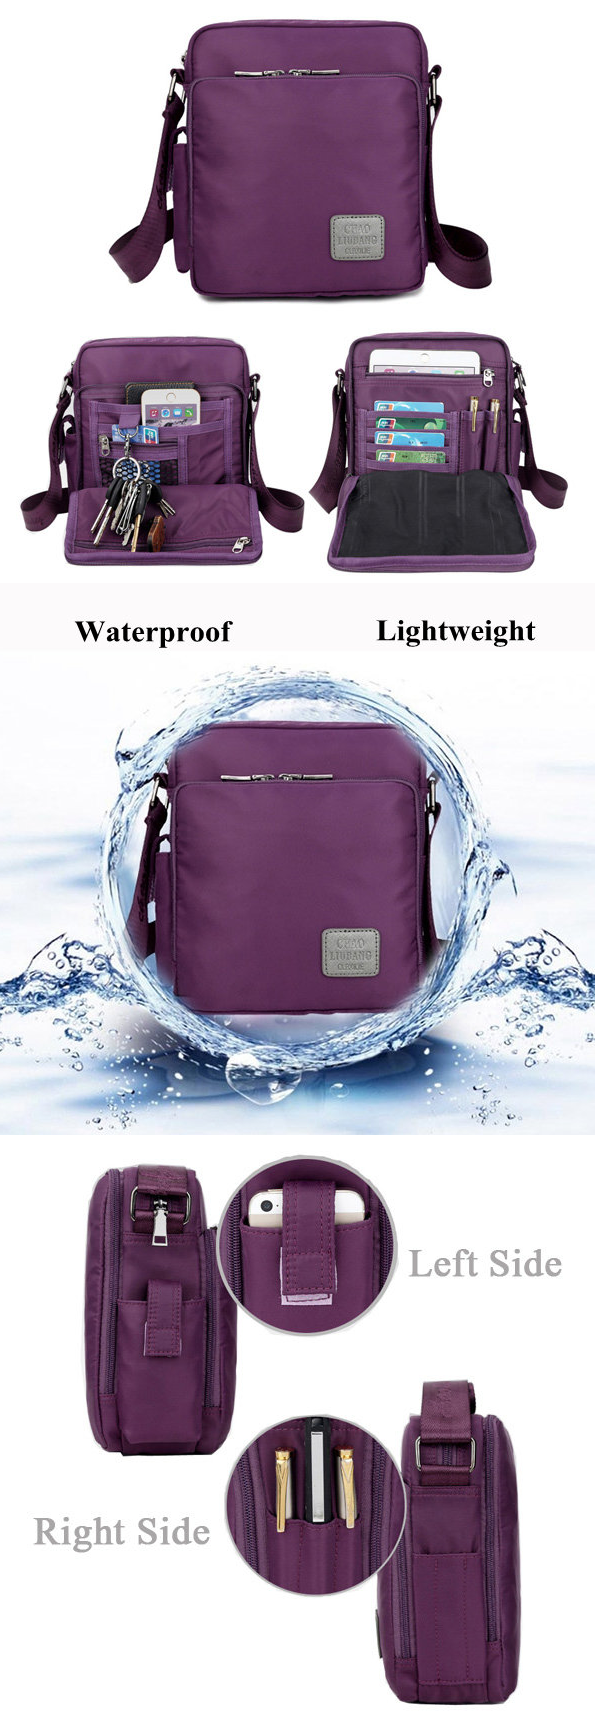 b6c2c63d24 US 21.73 Women Men Nylon Waterproof Multifunctional Shoulder Bags Crossbody  Bags